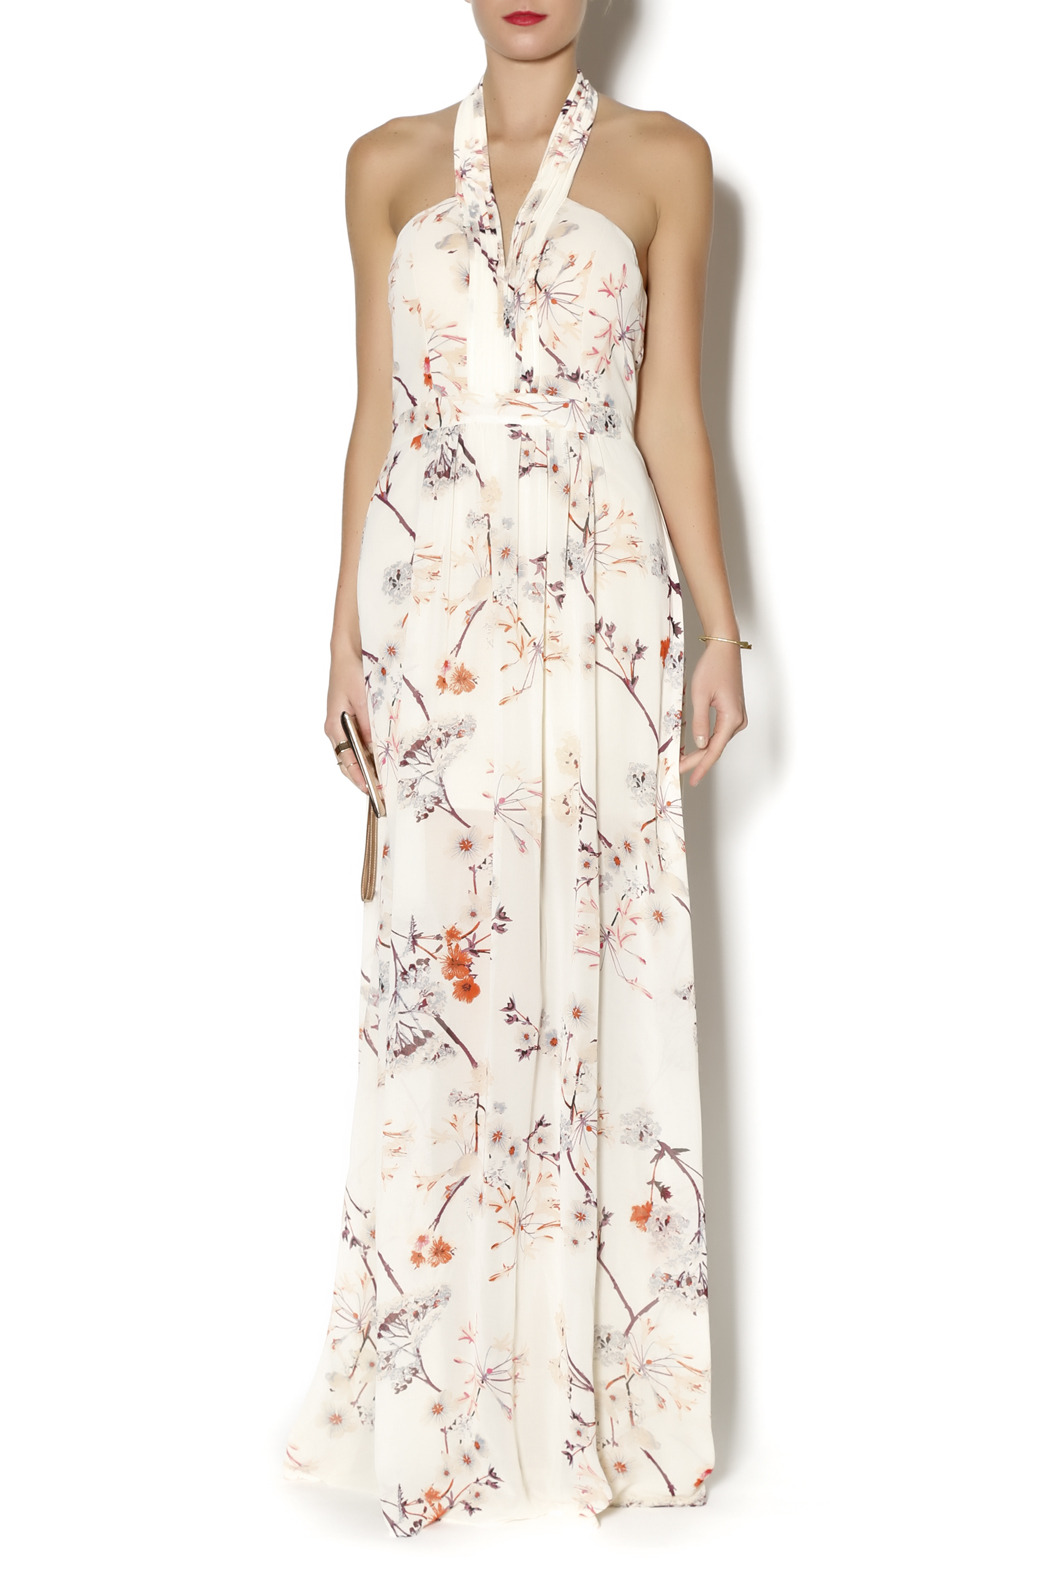 Ark & Co. Floral Halter Maxi - Main Image